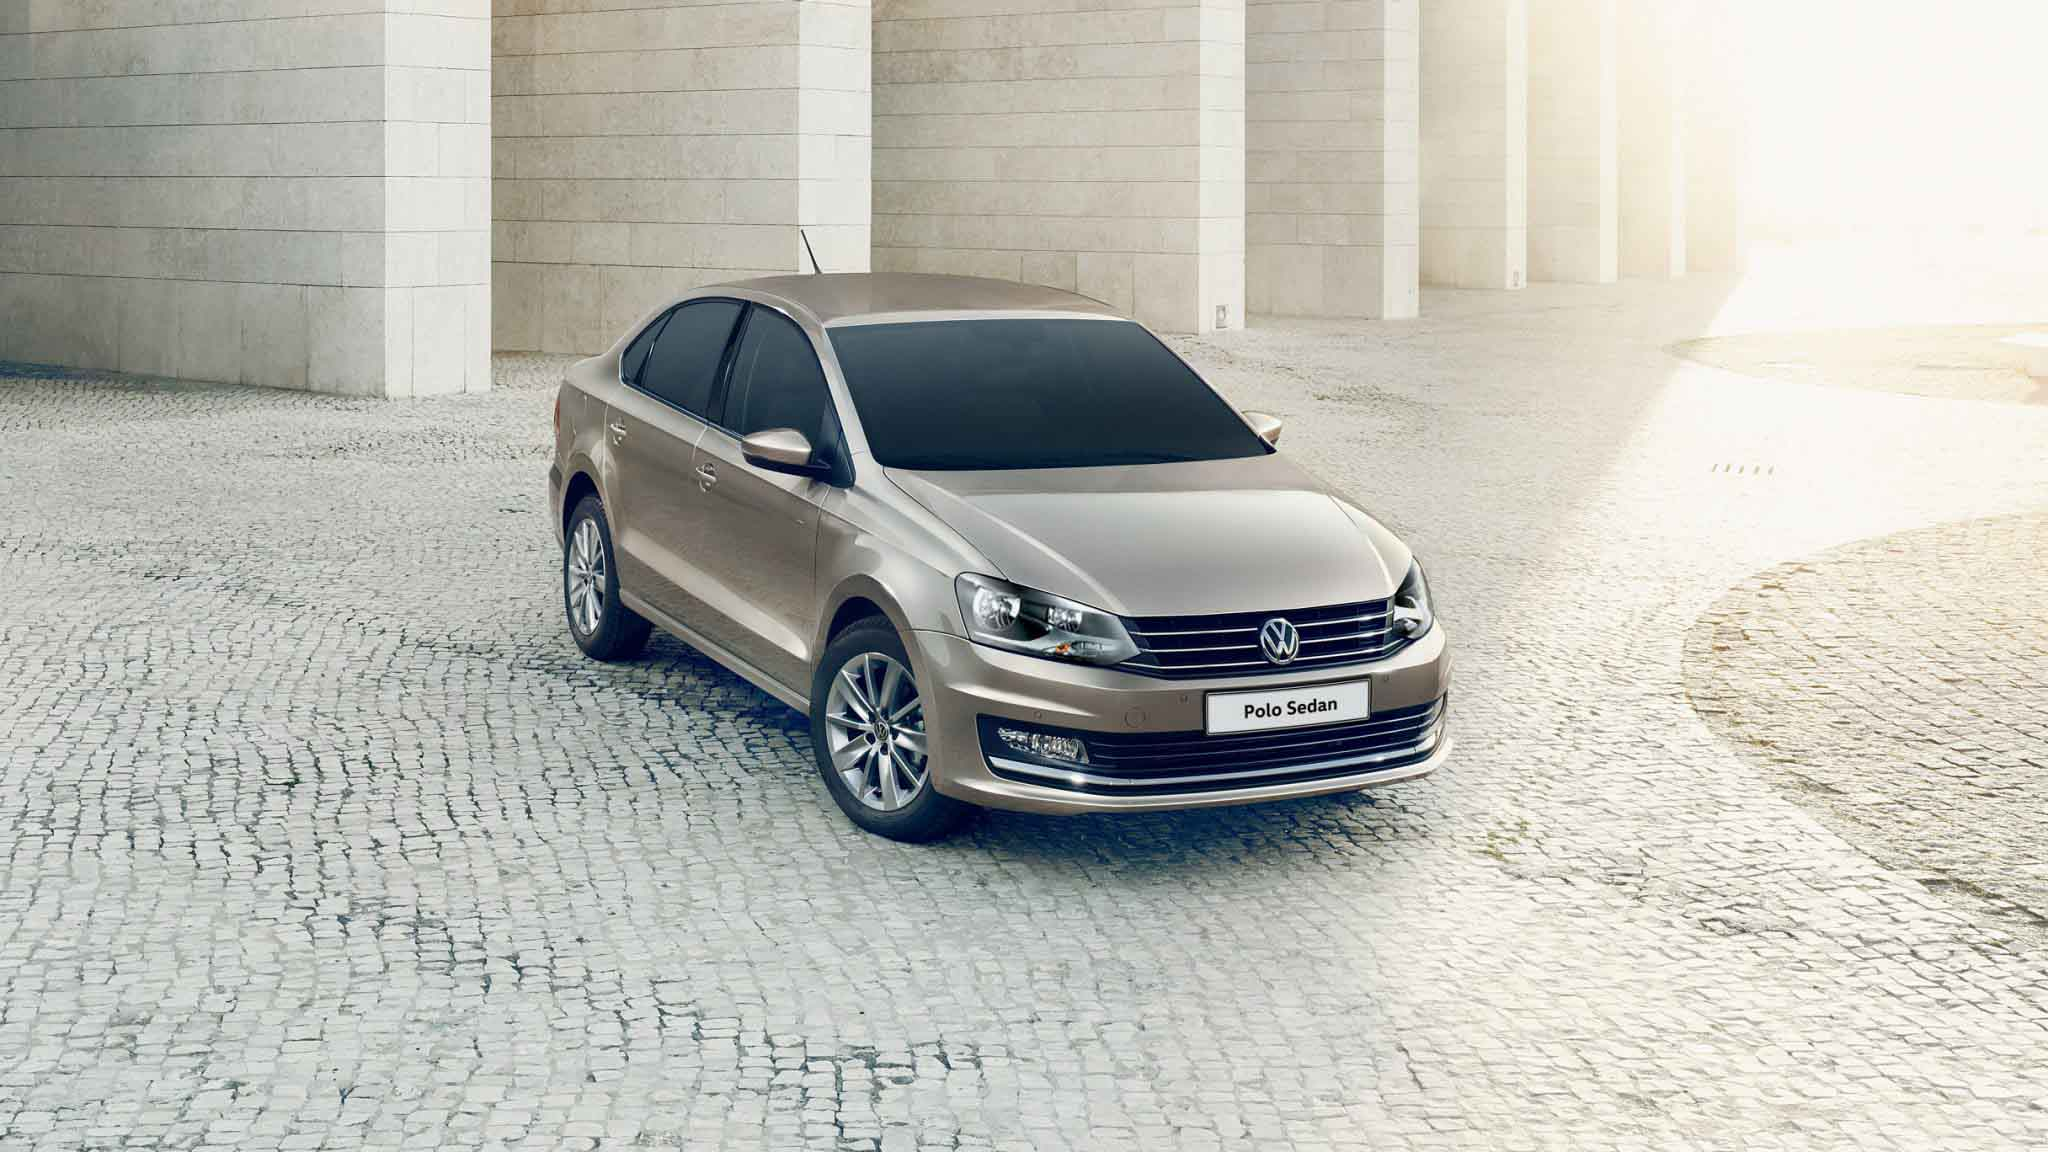 Volkswagen Polo Sedan specs and prices